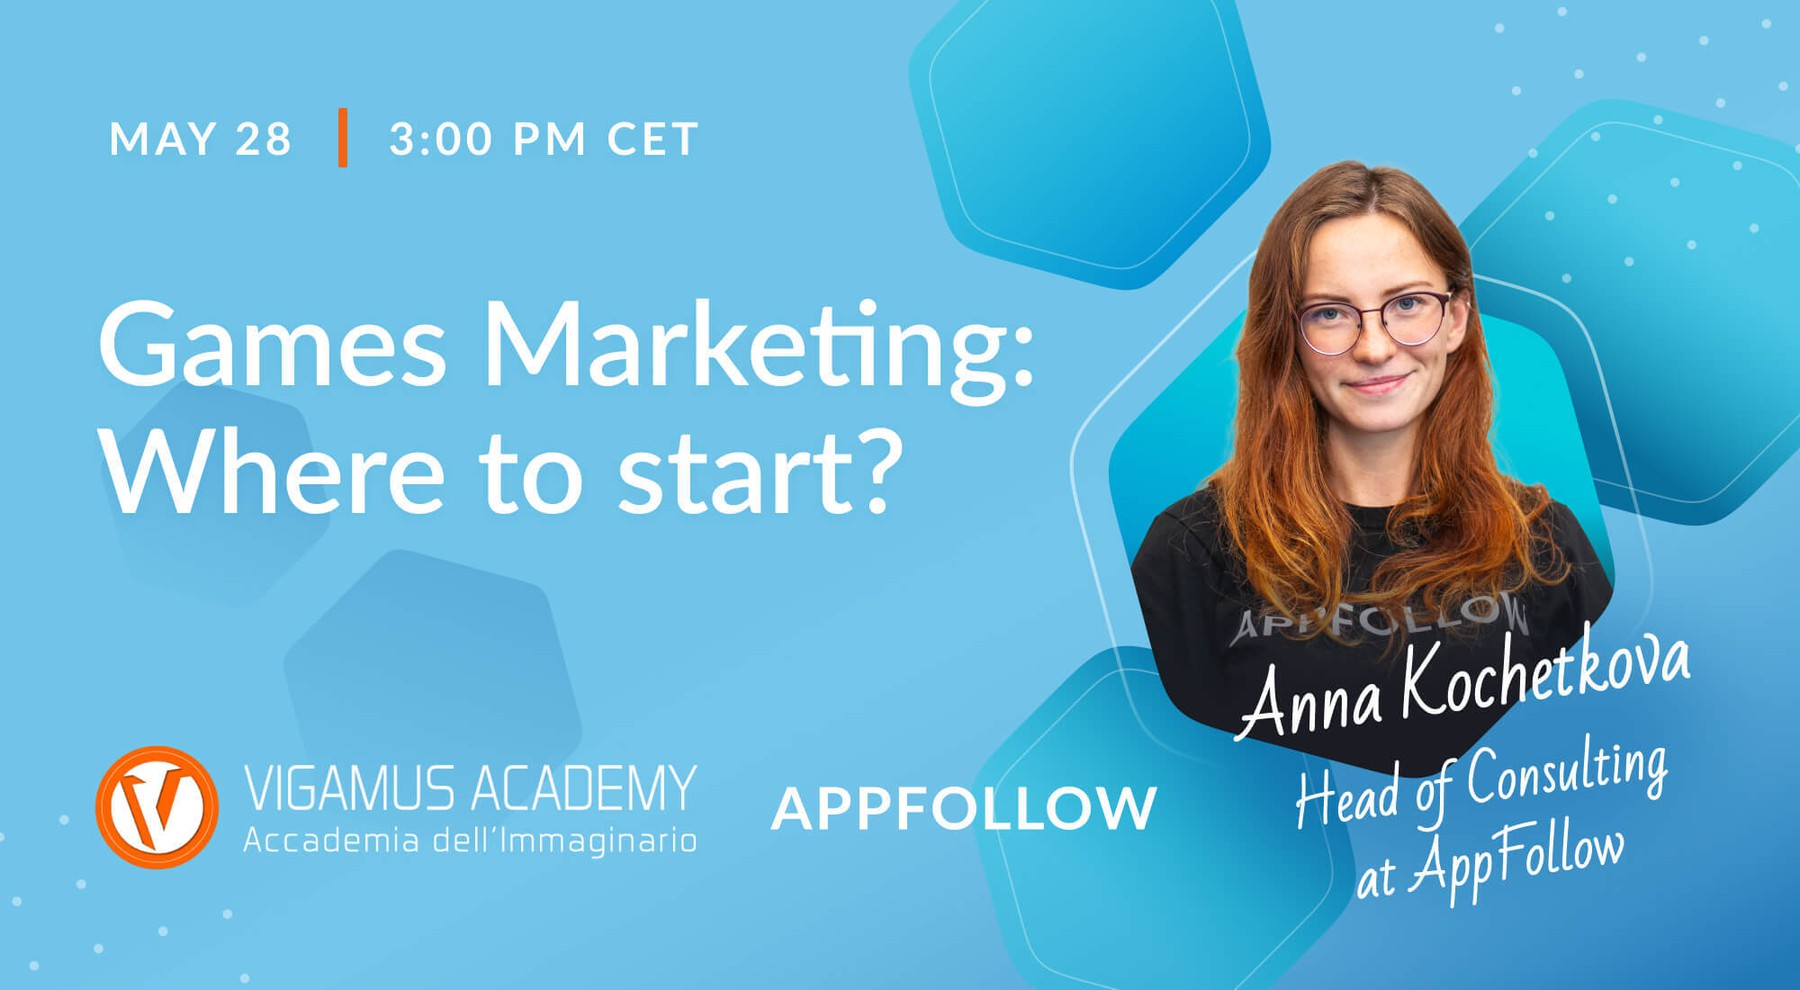 AppFollow will give a lecture for the Italian Vigamus Academy